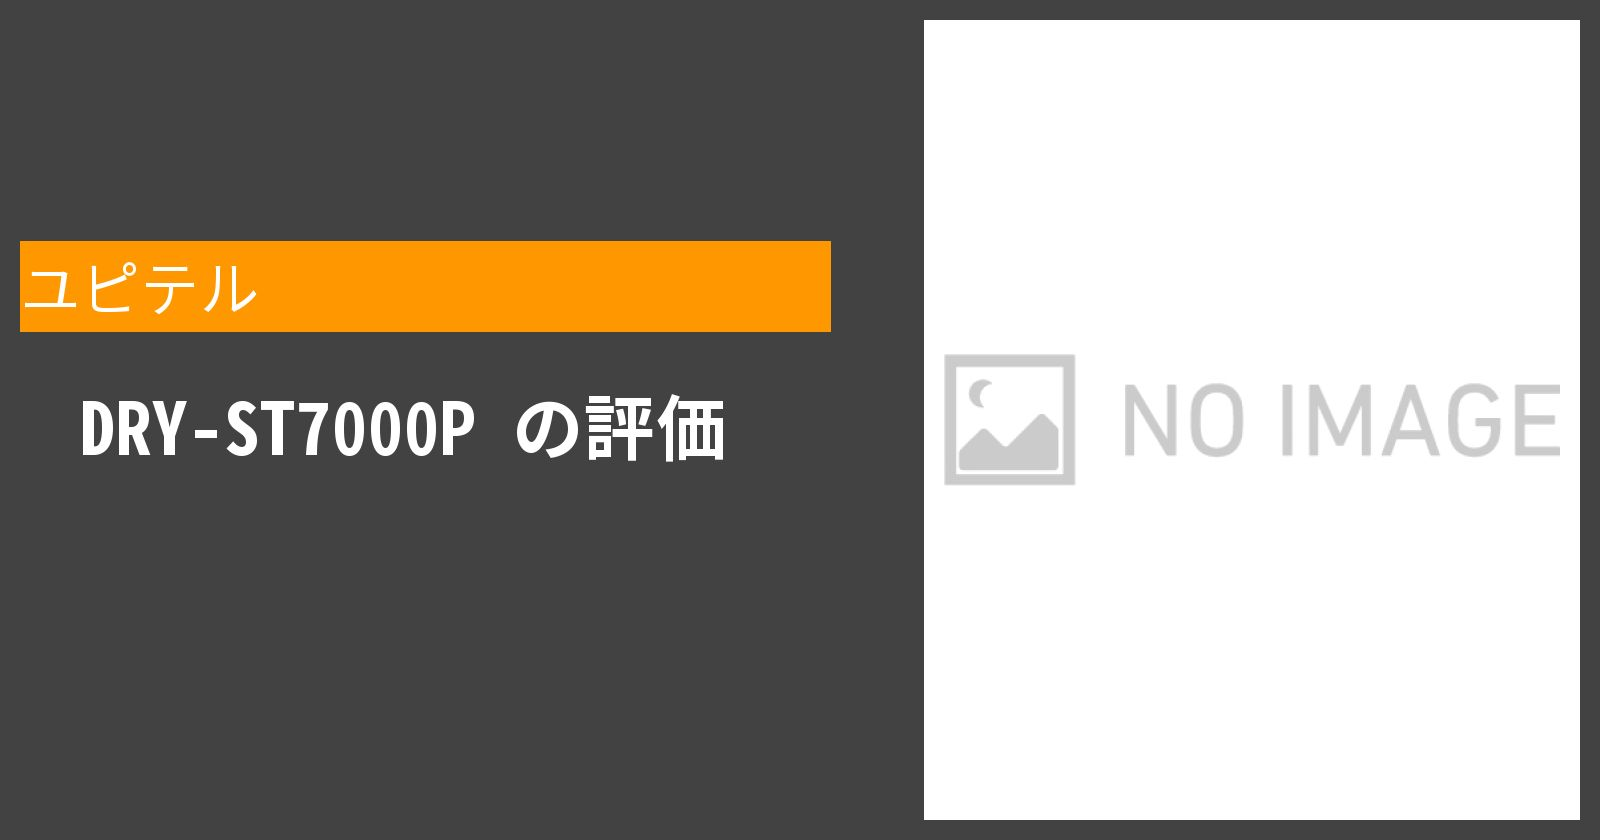 DRY-ST7000Pを徹底評価